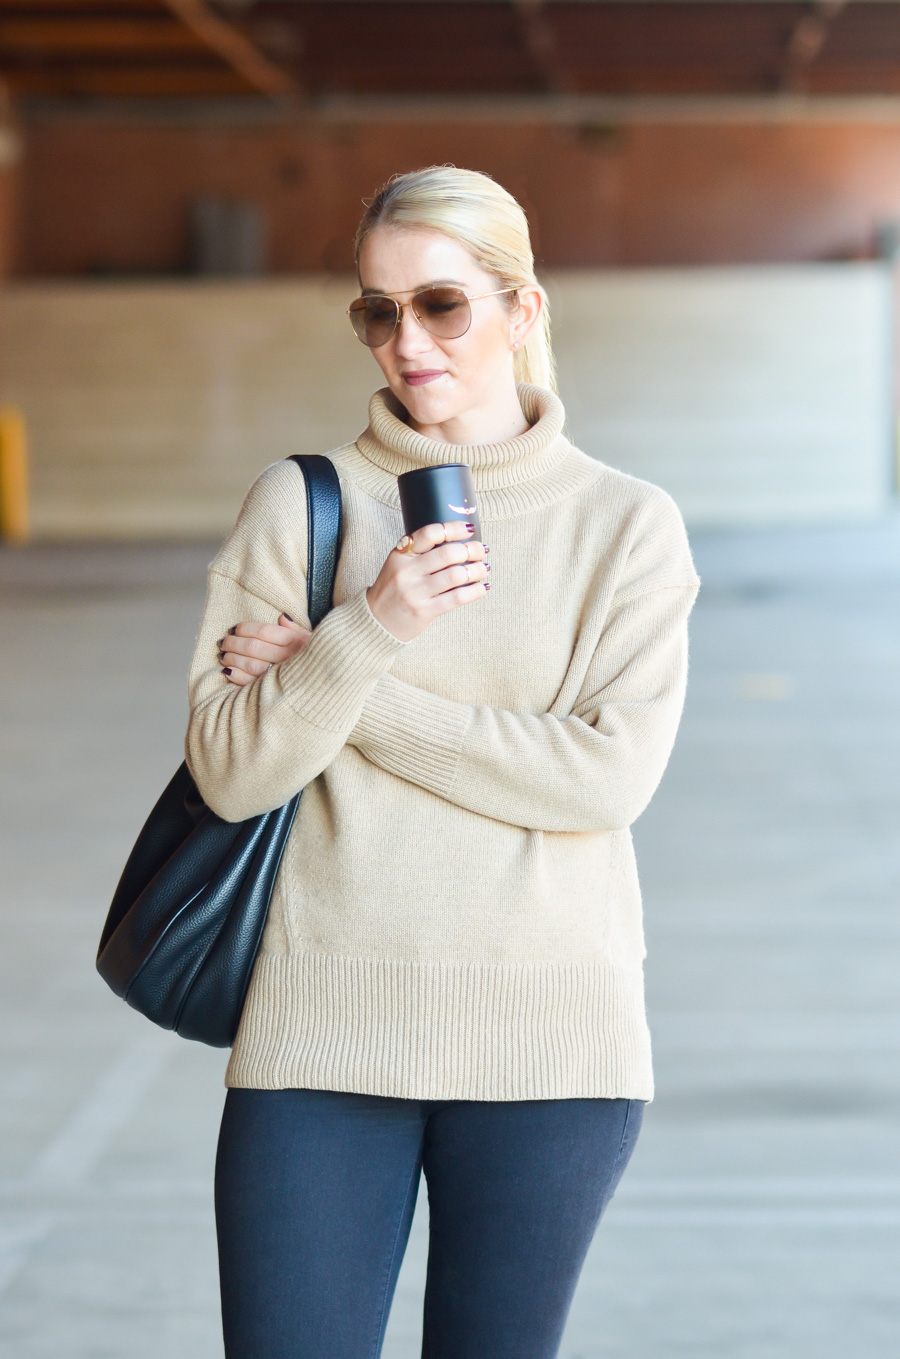 Aritzia Sweater Outfit w. Sneakers. Athlesiure.